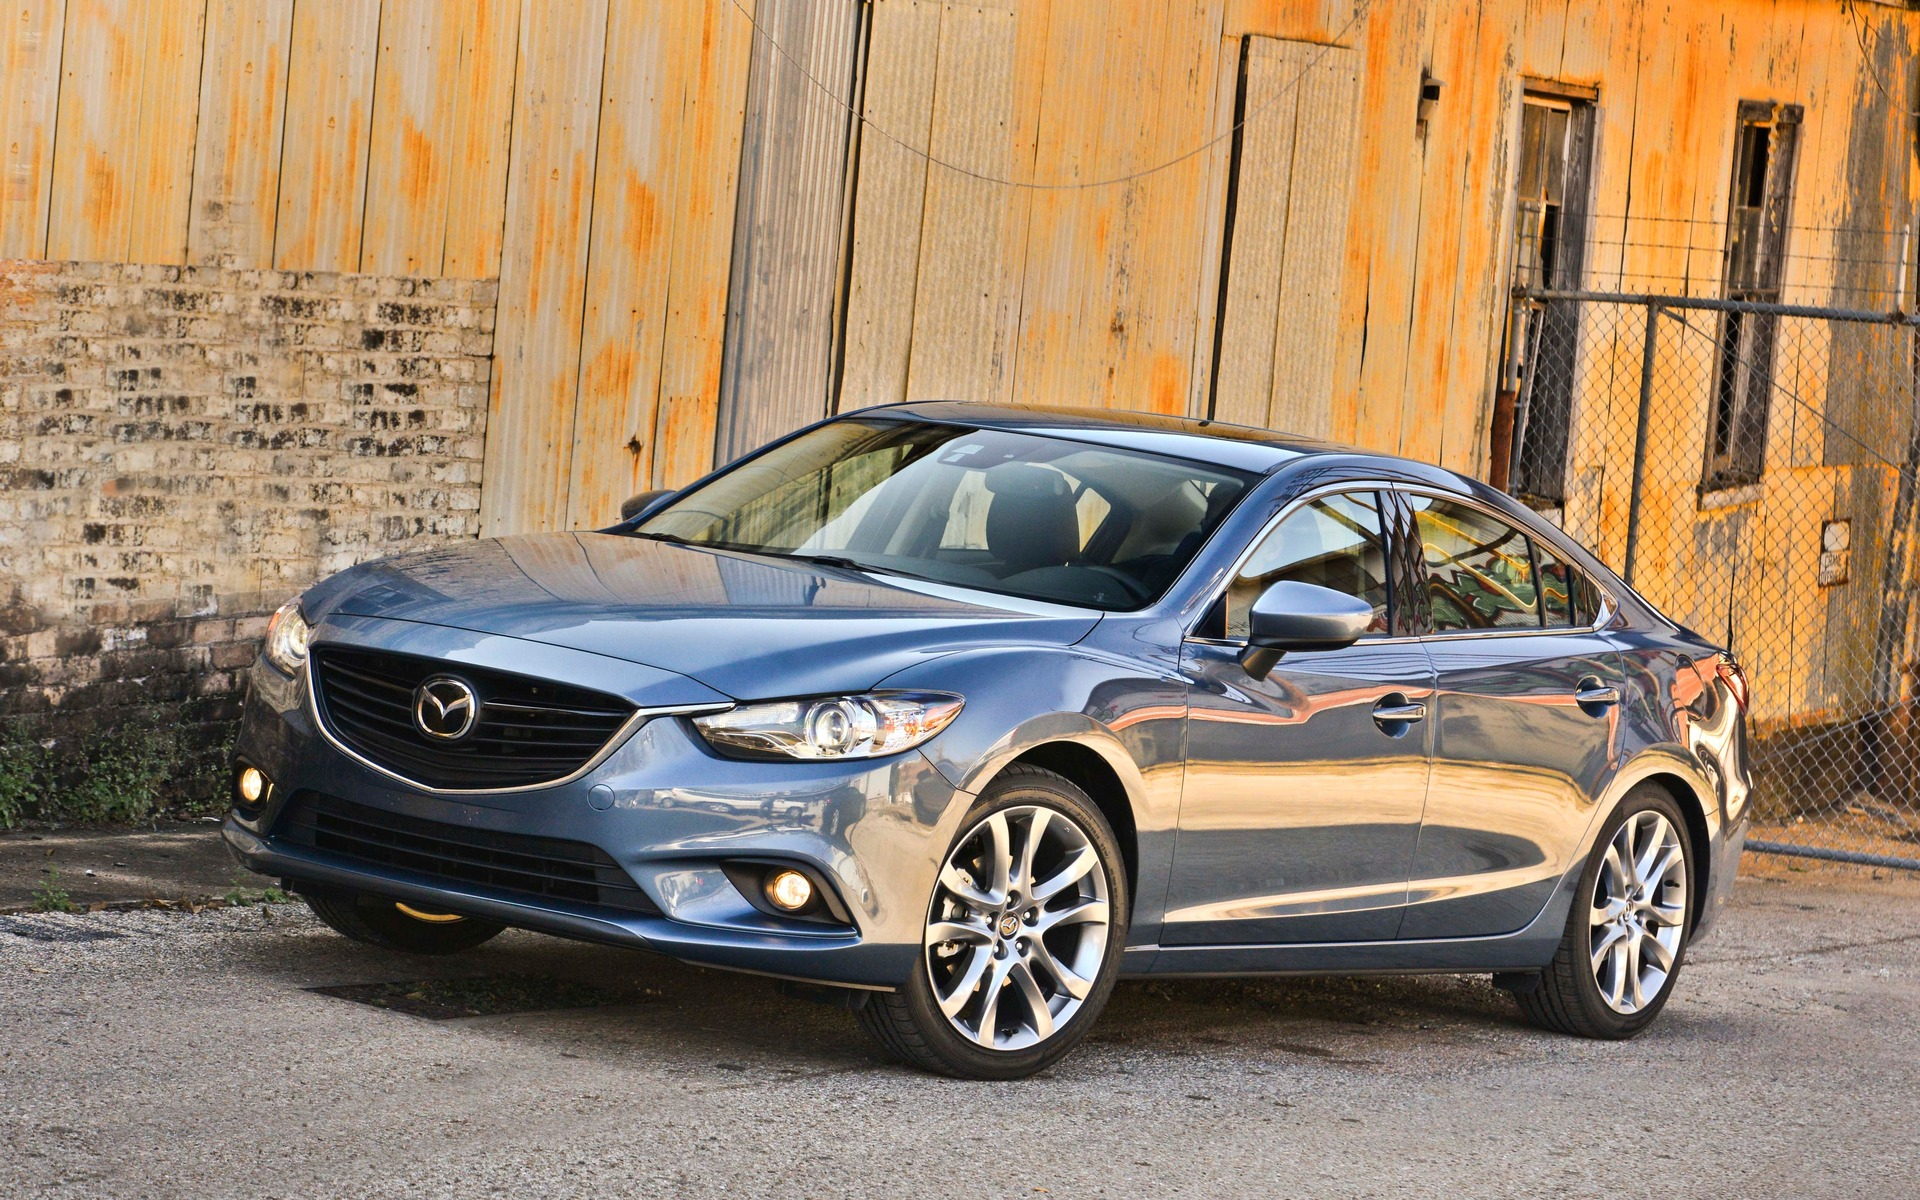 2017 Mazda Mazda6  News reviews picture galleries and videos